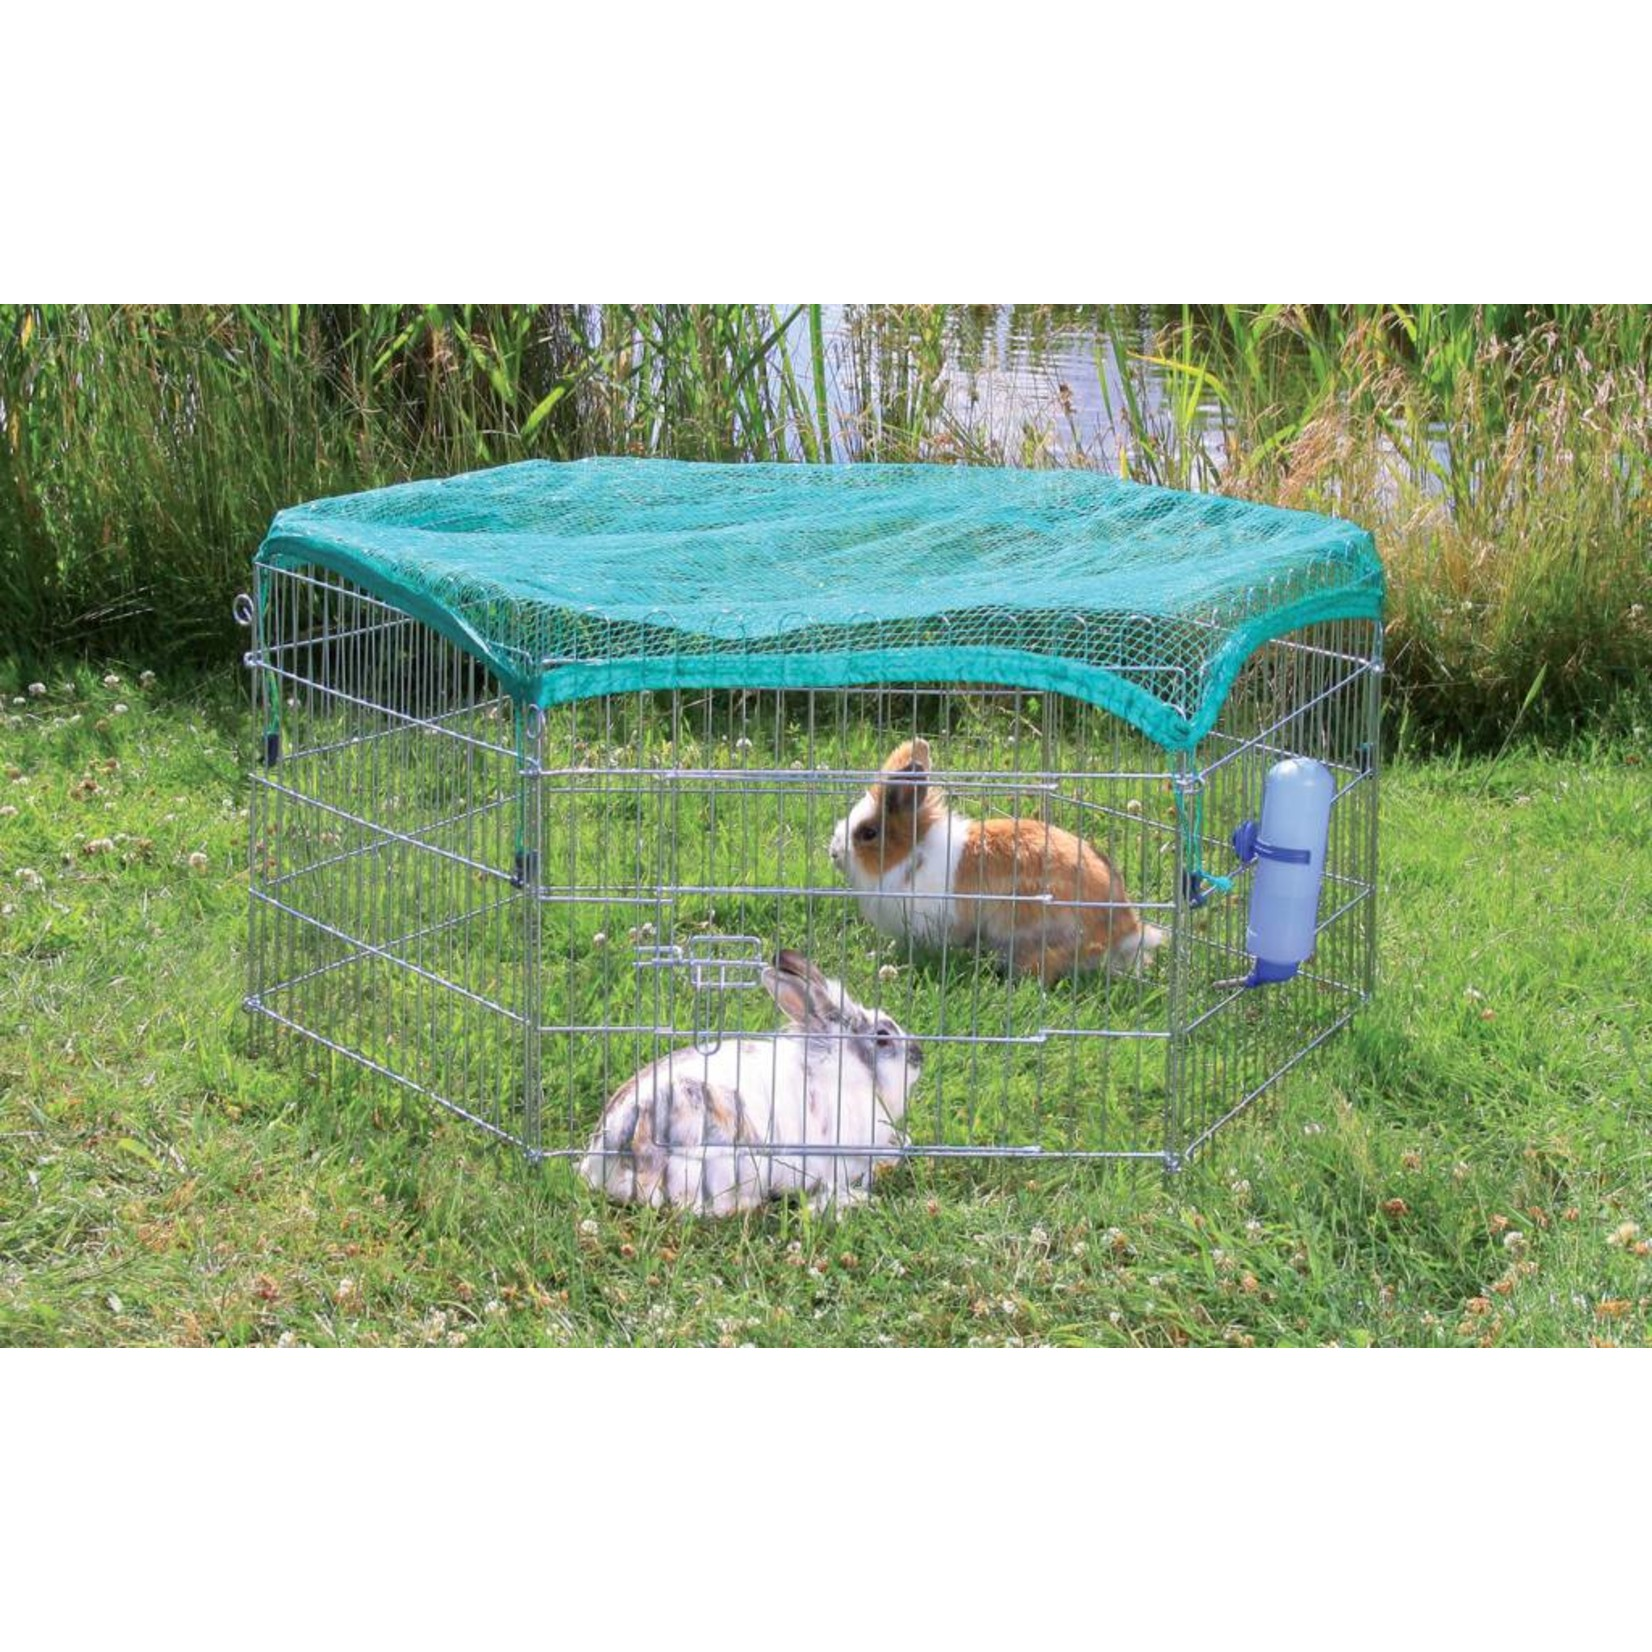 Trixie 6 Panel Outdoor Run with Protective Net, 6 panels of 63 x 60cm